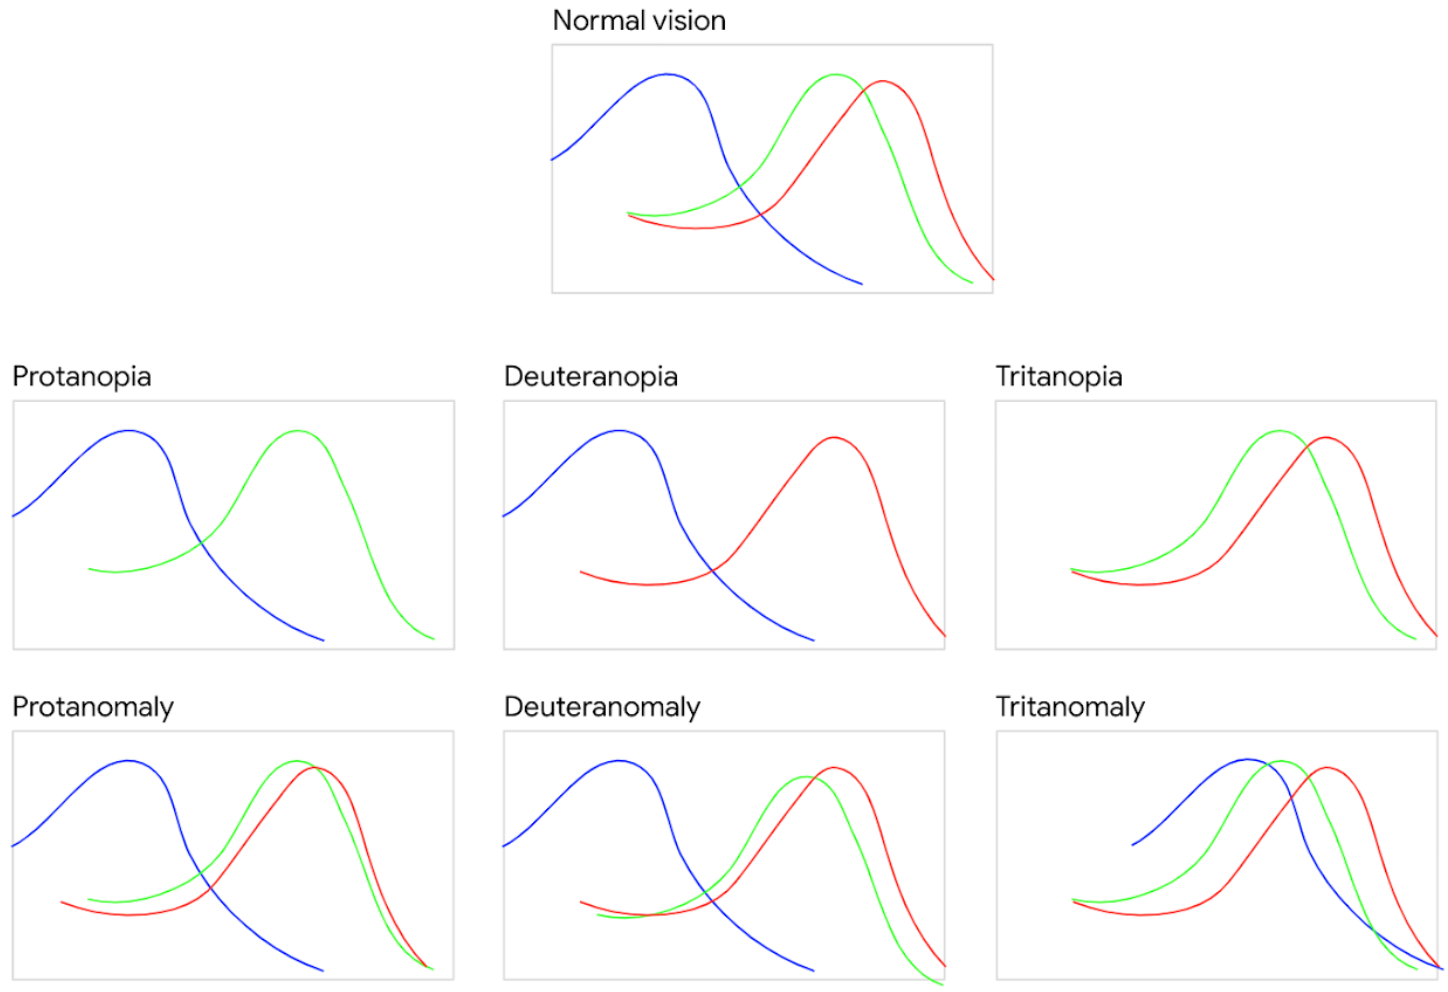 Image showing the different wavelengths